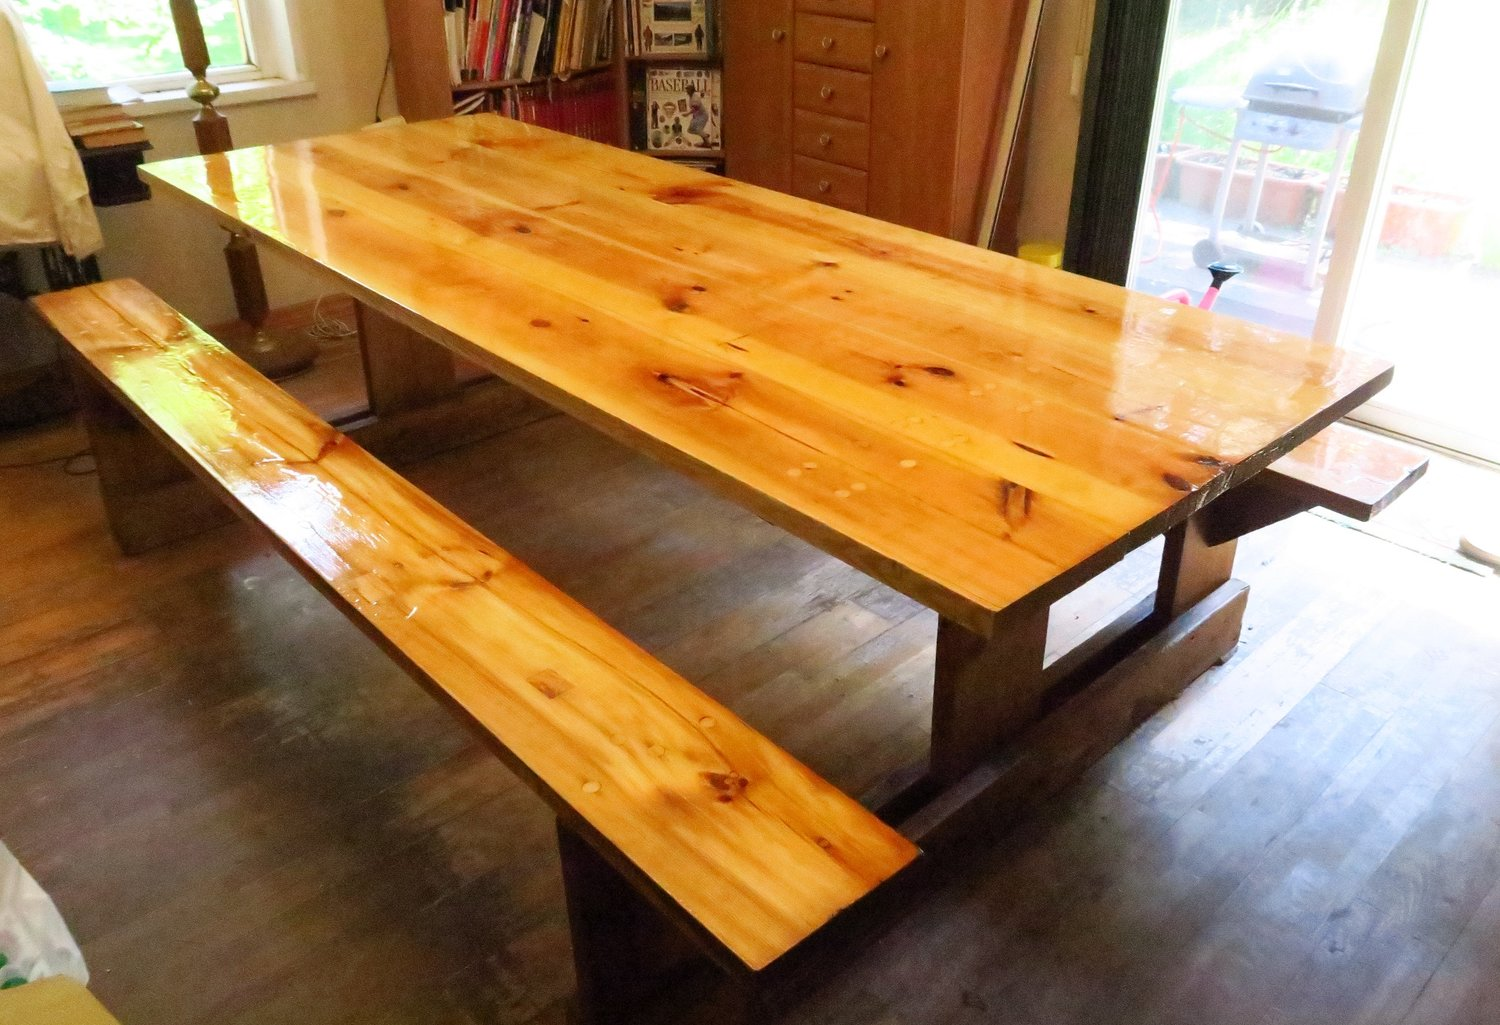 I've shared about the table before. We use it for eating, playing games, used it for homework when the kids were home, and various other things. It's an 8' table. My son redid it during 2018 to make it this beautiful!